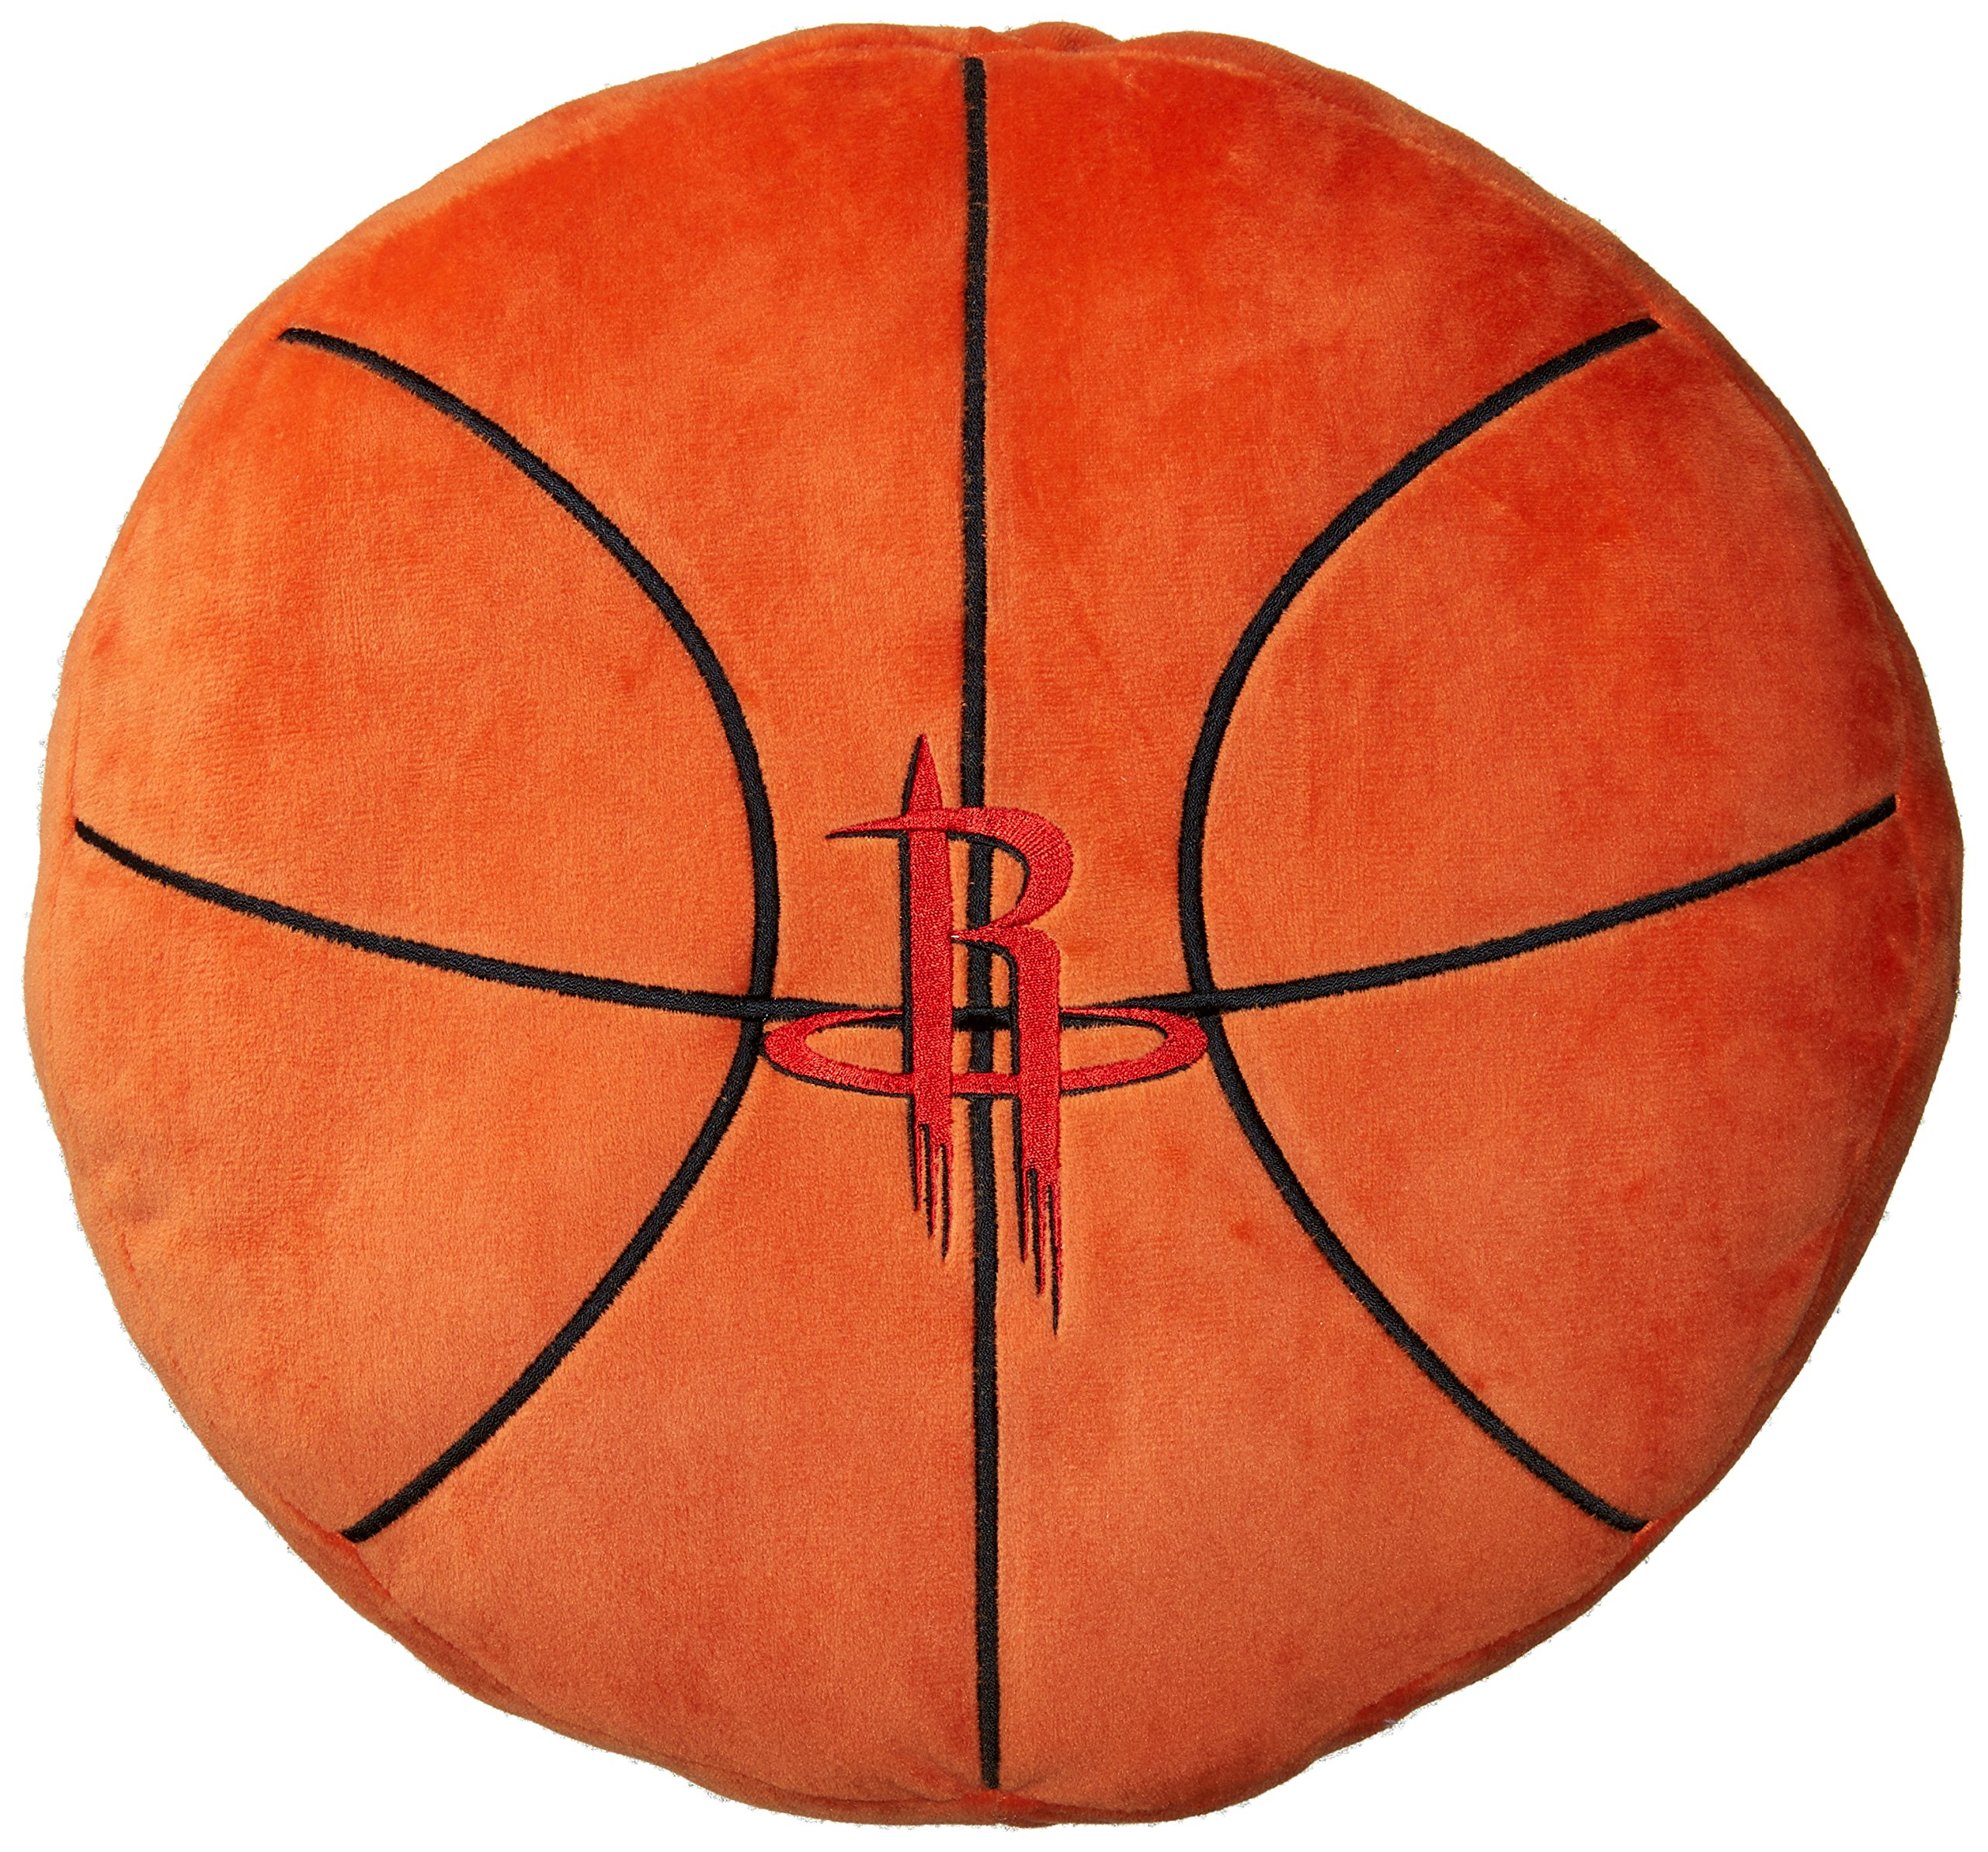 Officially Licensed NBA Chicago Bulls ''3D'' Basketball Shaped Pillow, Orange, 15'' x 15'' x 2'' by The Northwest Company